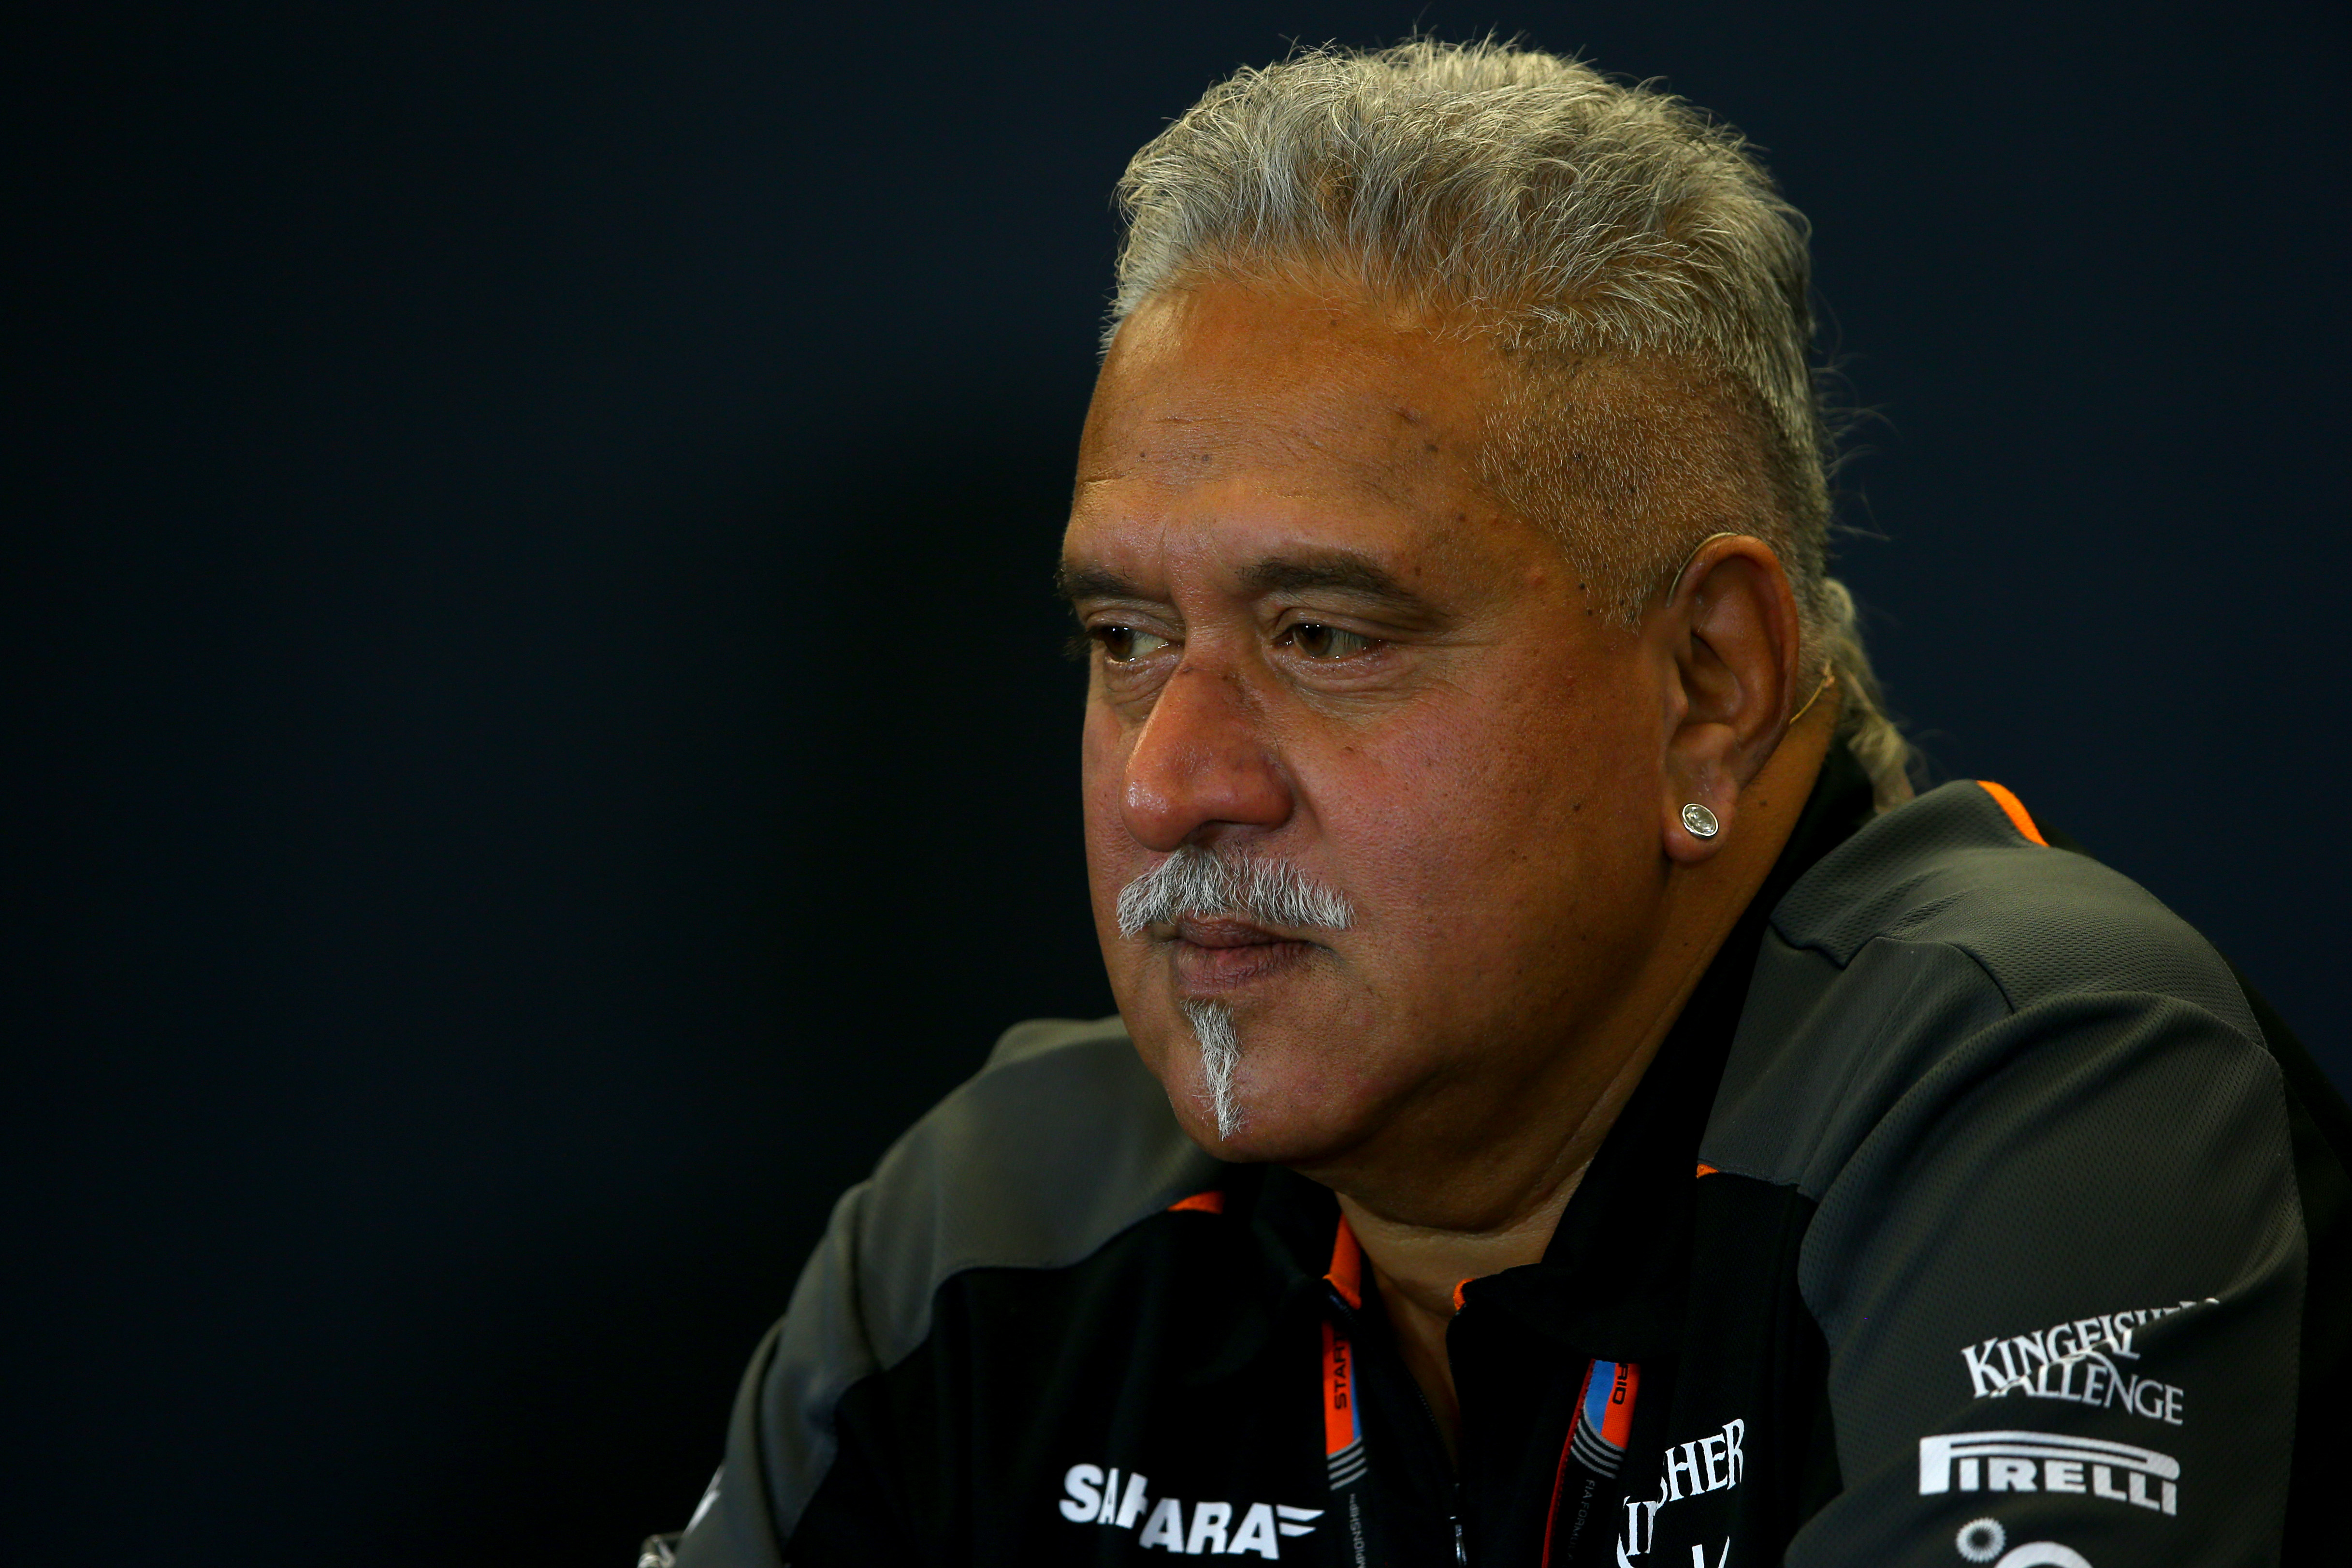 Indian tycoon Vijay Mallya attends a press conference after practice for the U.S. Formula One Grand Prix at Circuit of the Americas on Oct. 23, 2015 in Austin